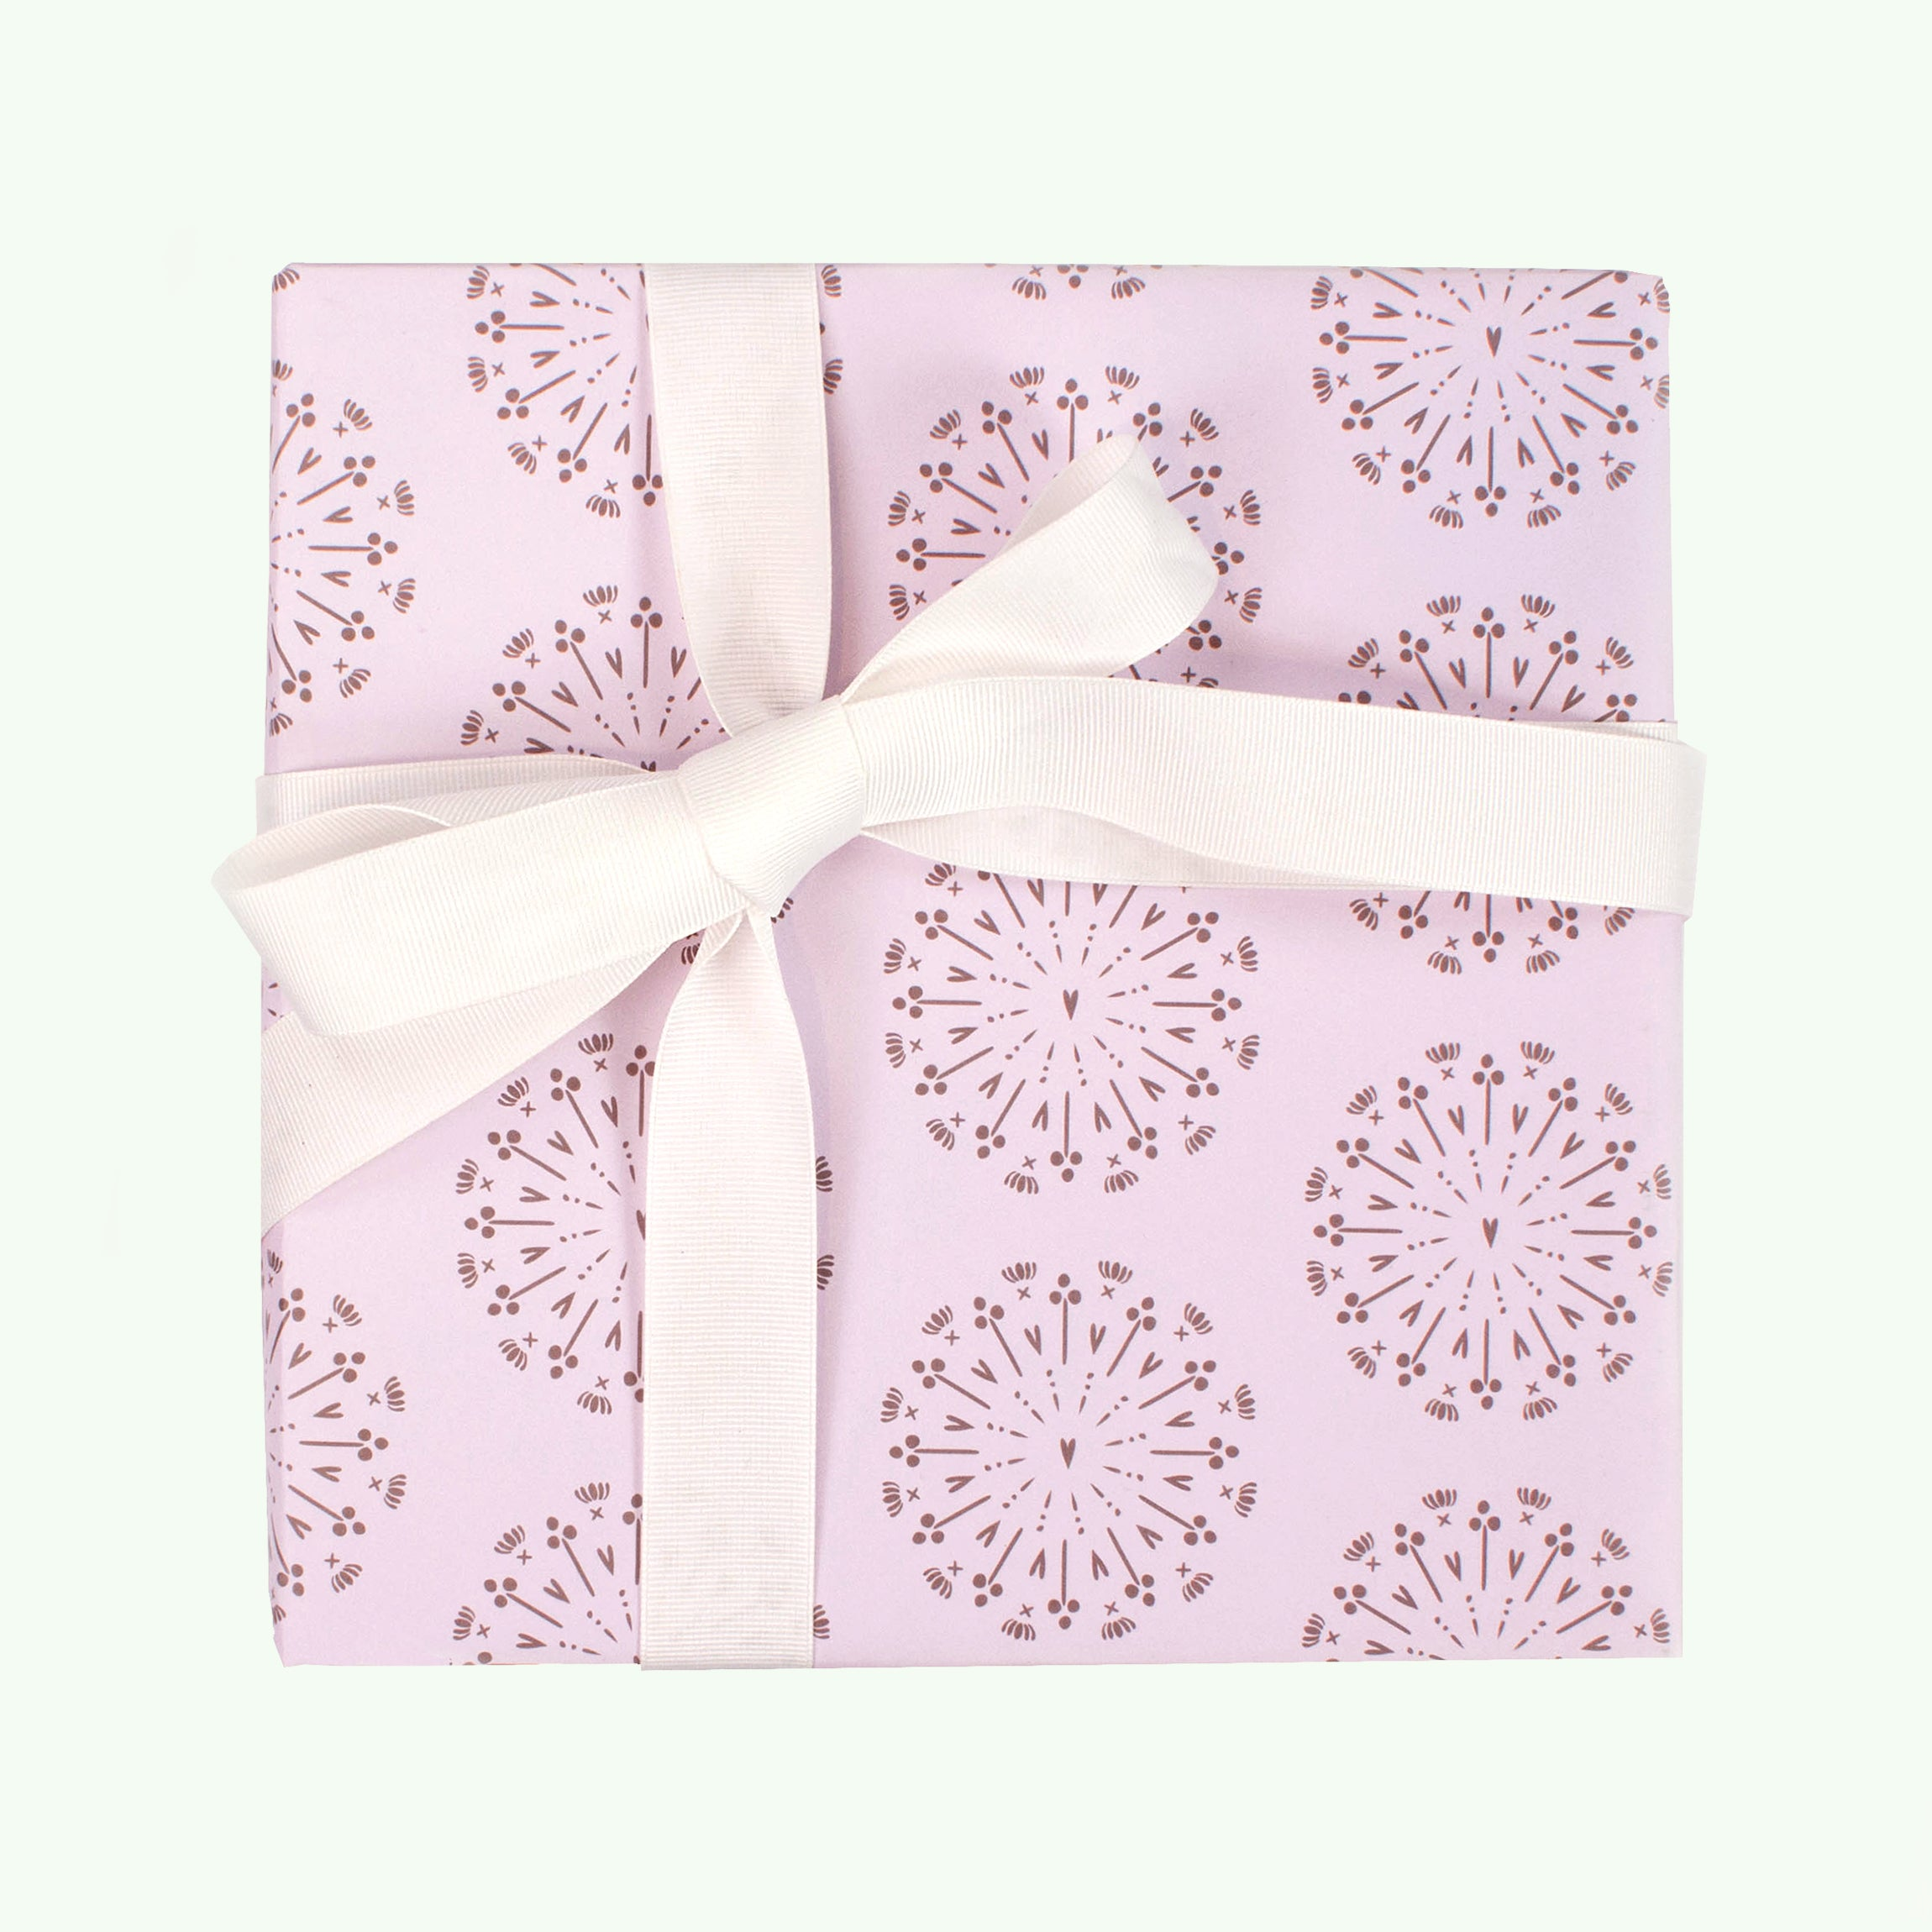 Have Heart – Wrapping Sheets for Gifts